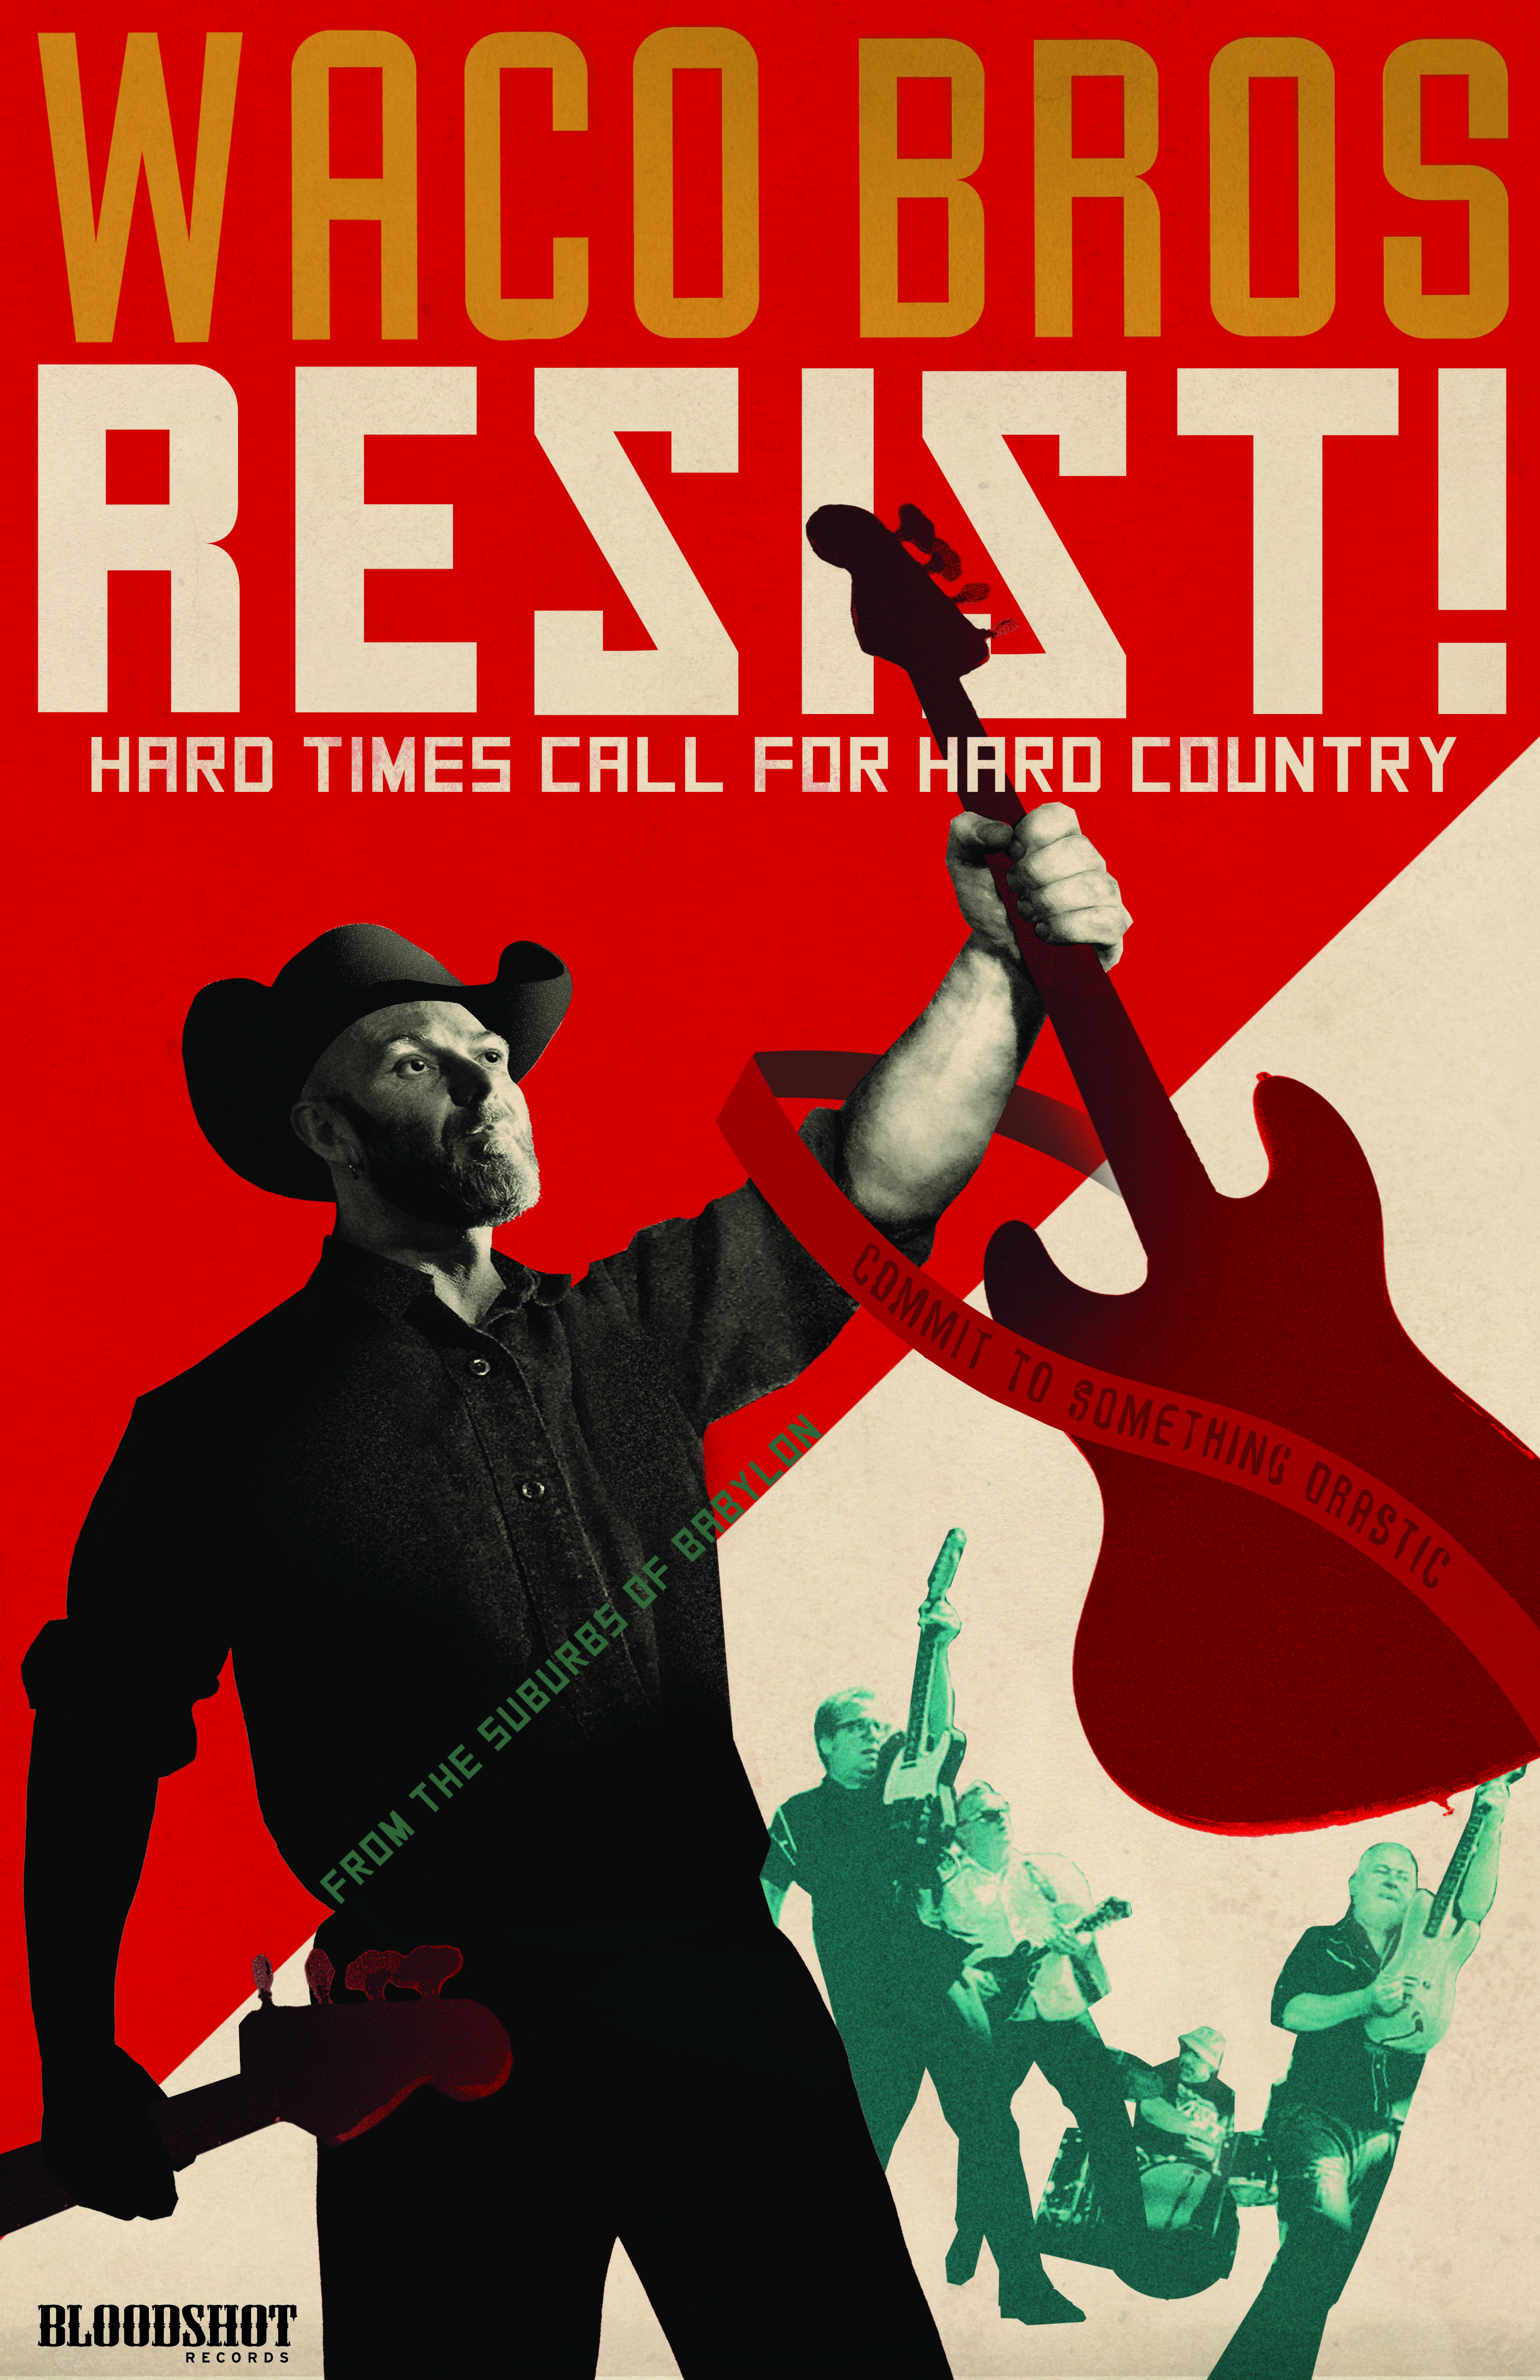 Waco Brothers RESIST Poster